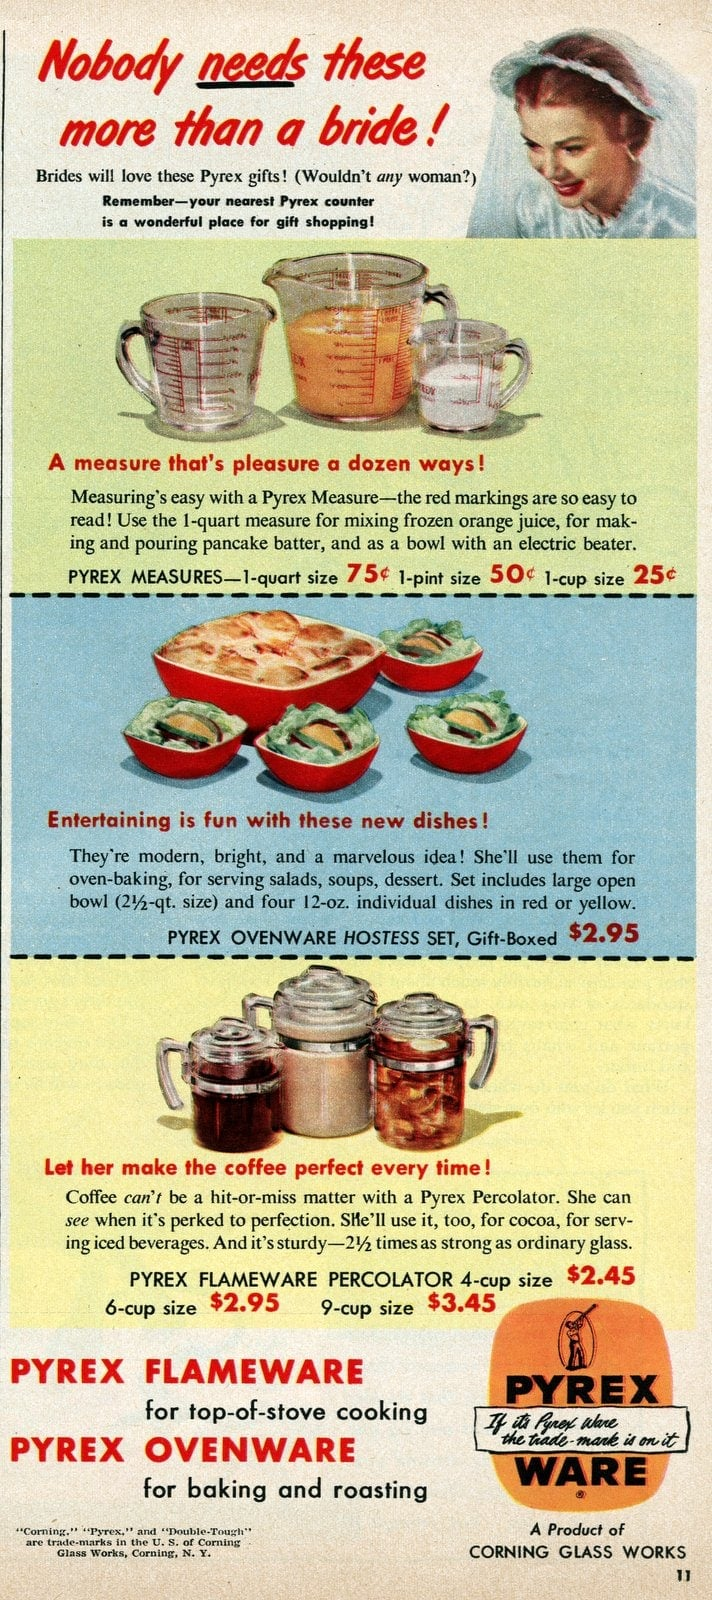 Vintage Pyrex kitchenware for a bride - ad from 1950 (1)